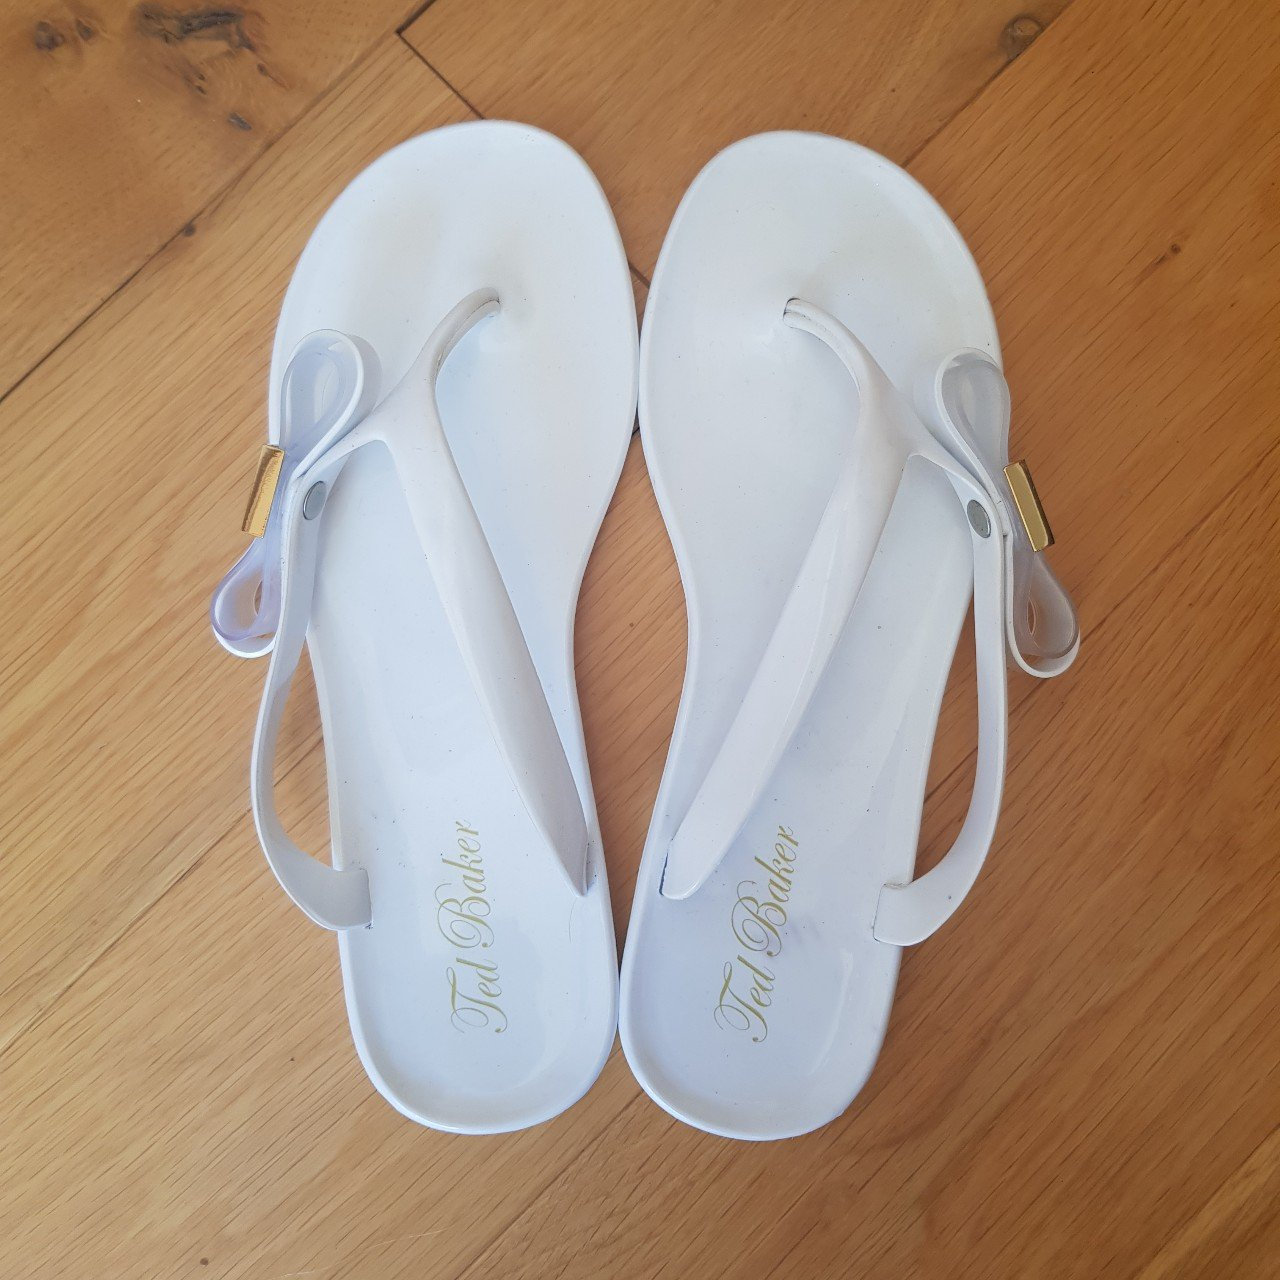 21deab4d370c63 White Ted Baker Bow Flip Flops Size 5 - Really good worn a - Depop